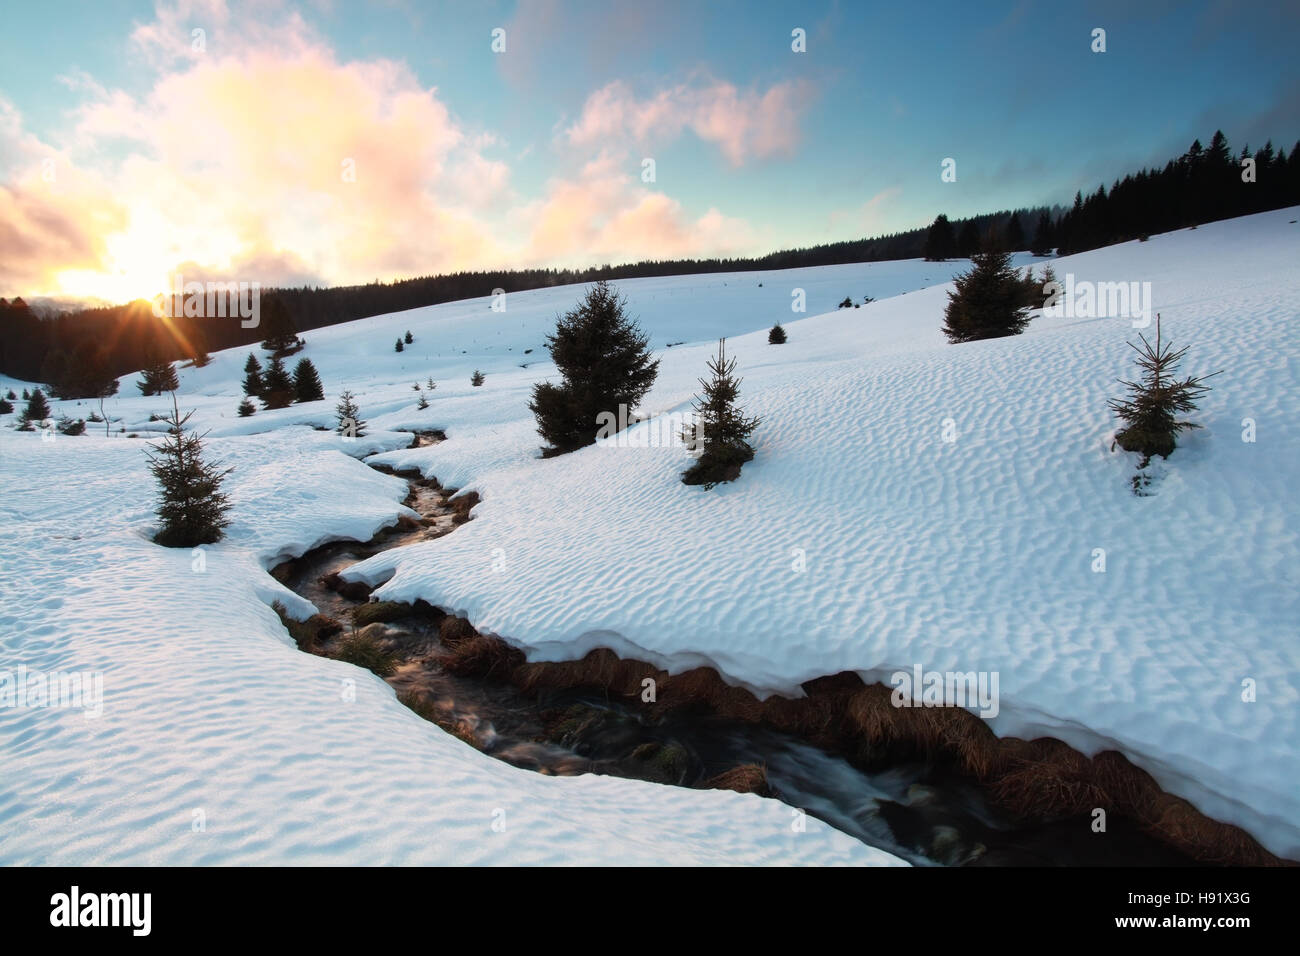 winter sunset over snow mountains with river, Germany - Stock Image